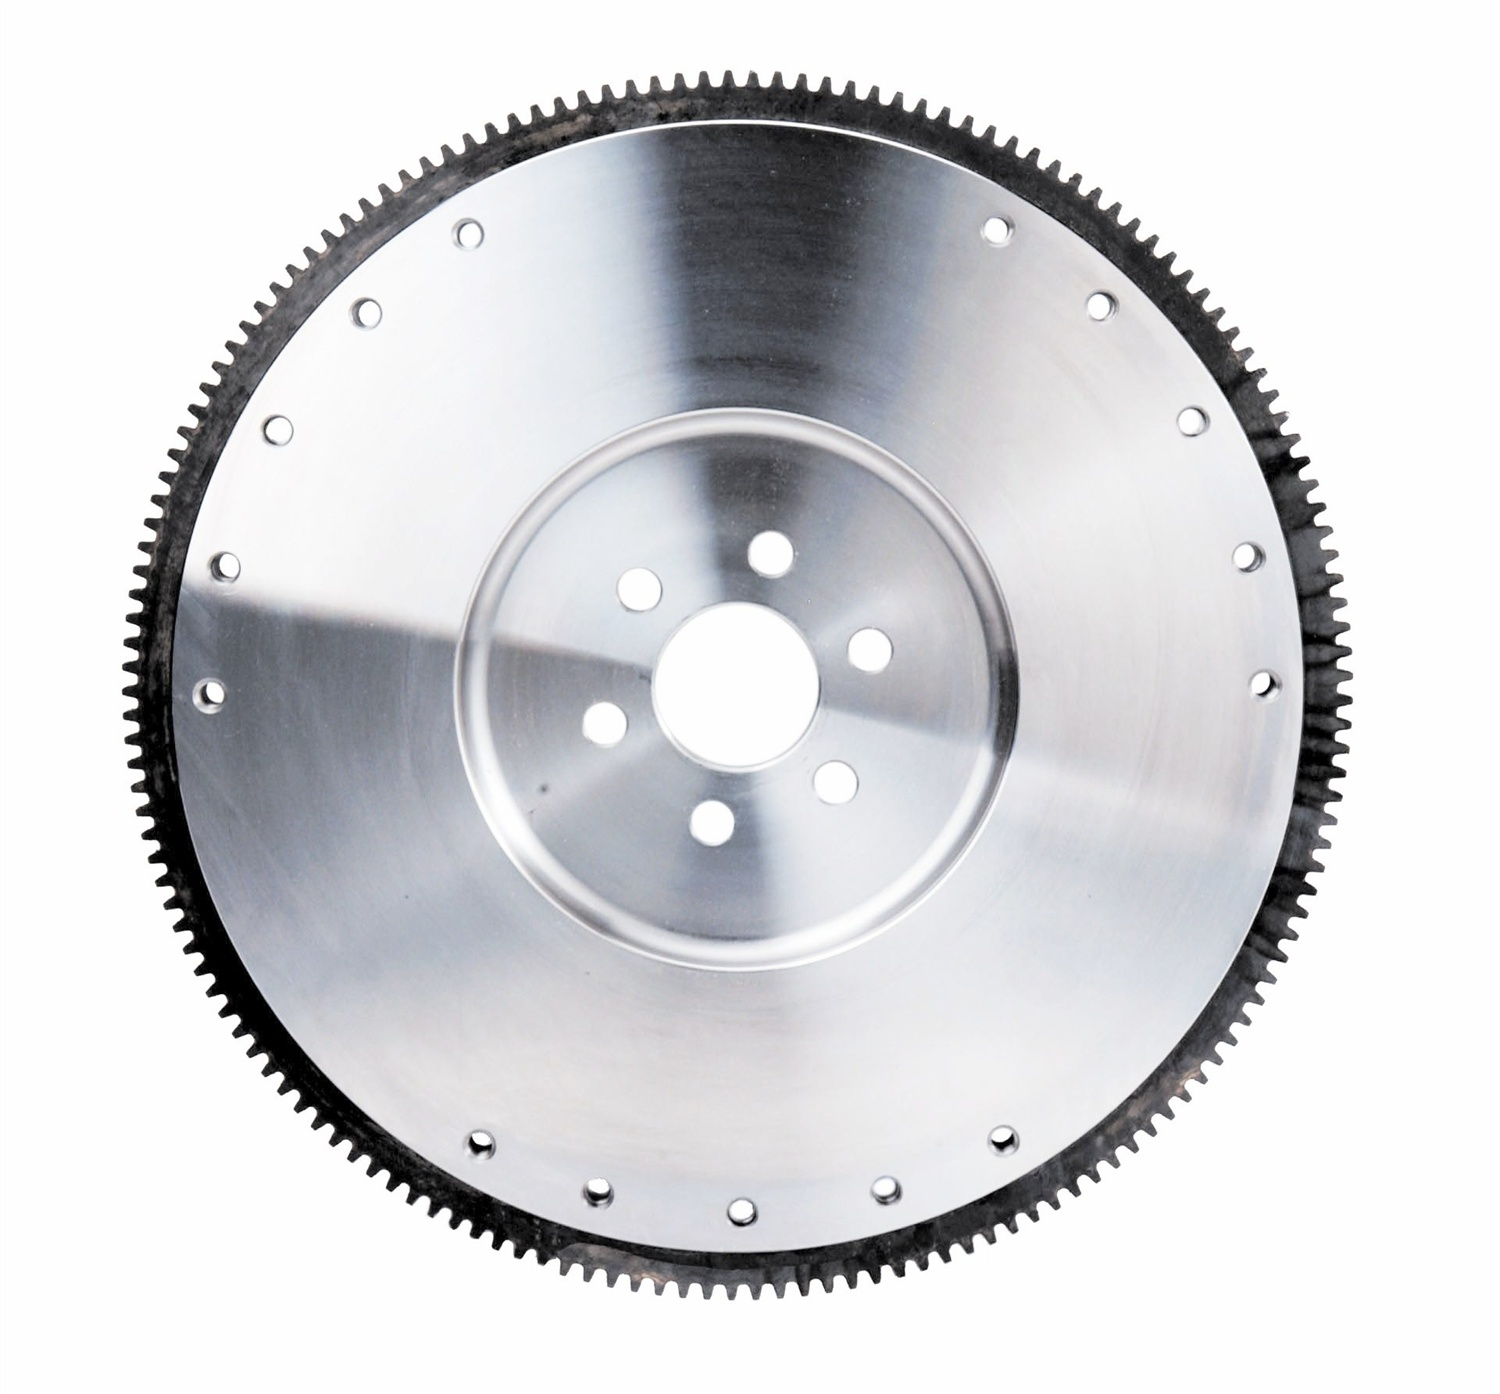 Ford Performance Parts M-6375-C302B Flywheel